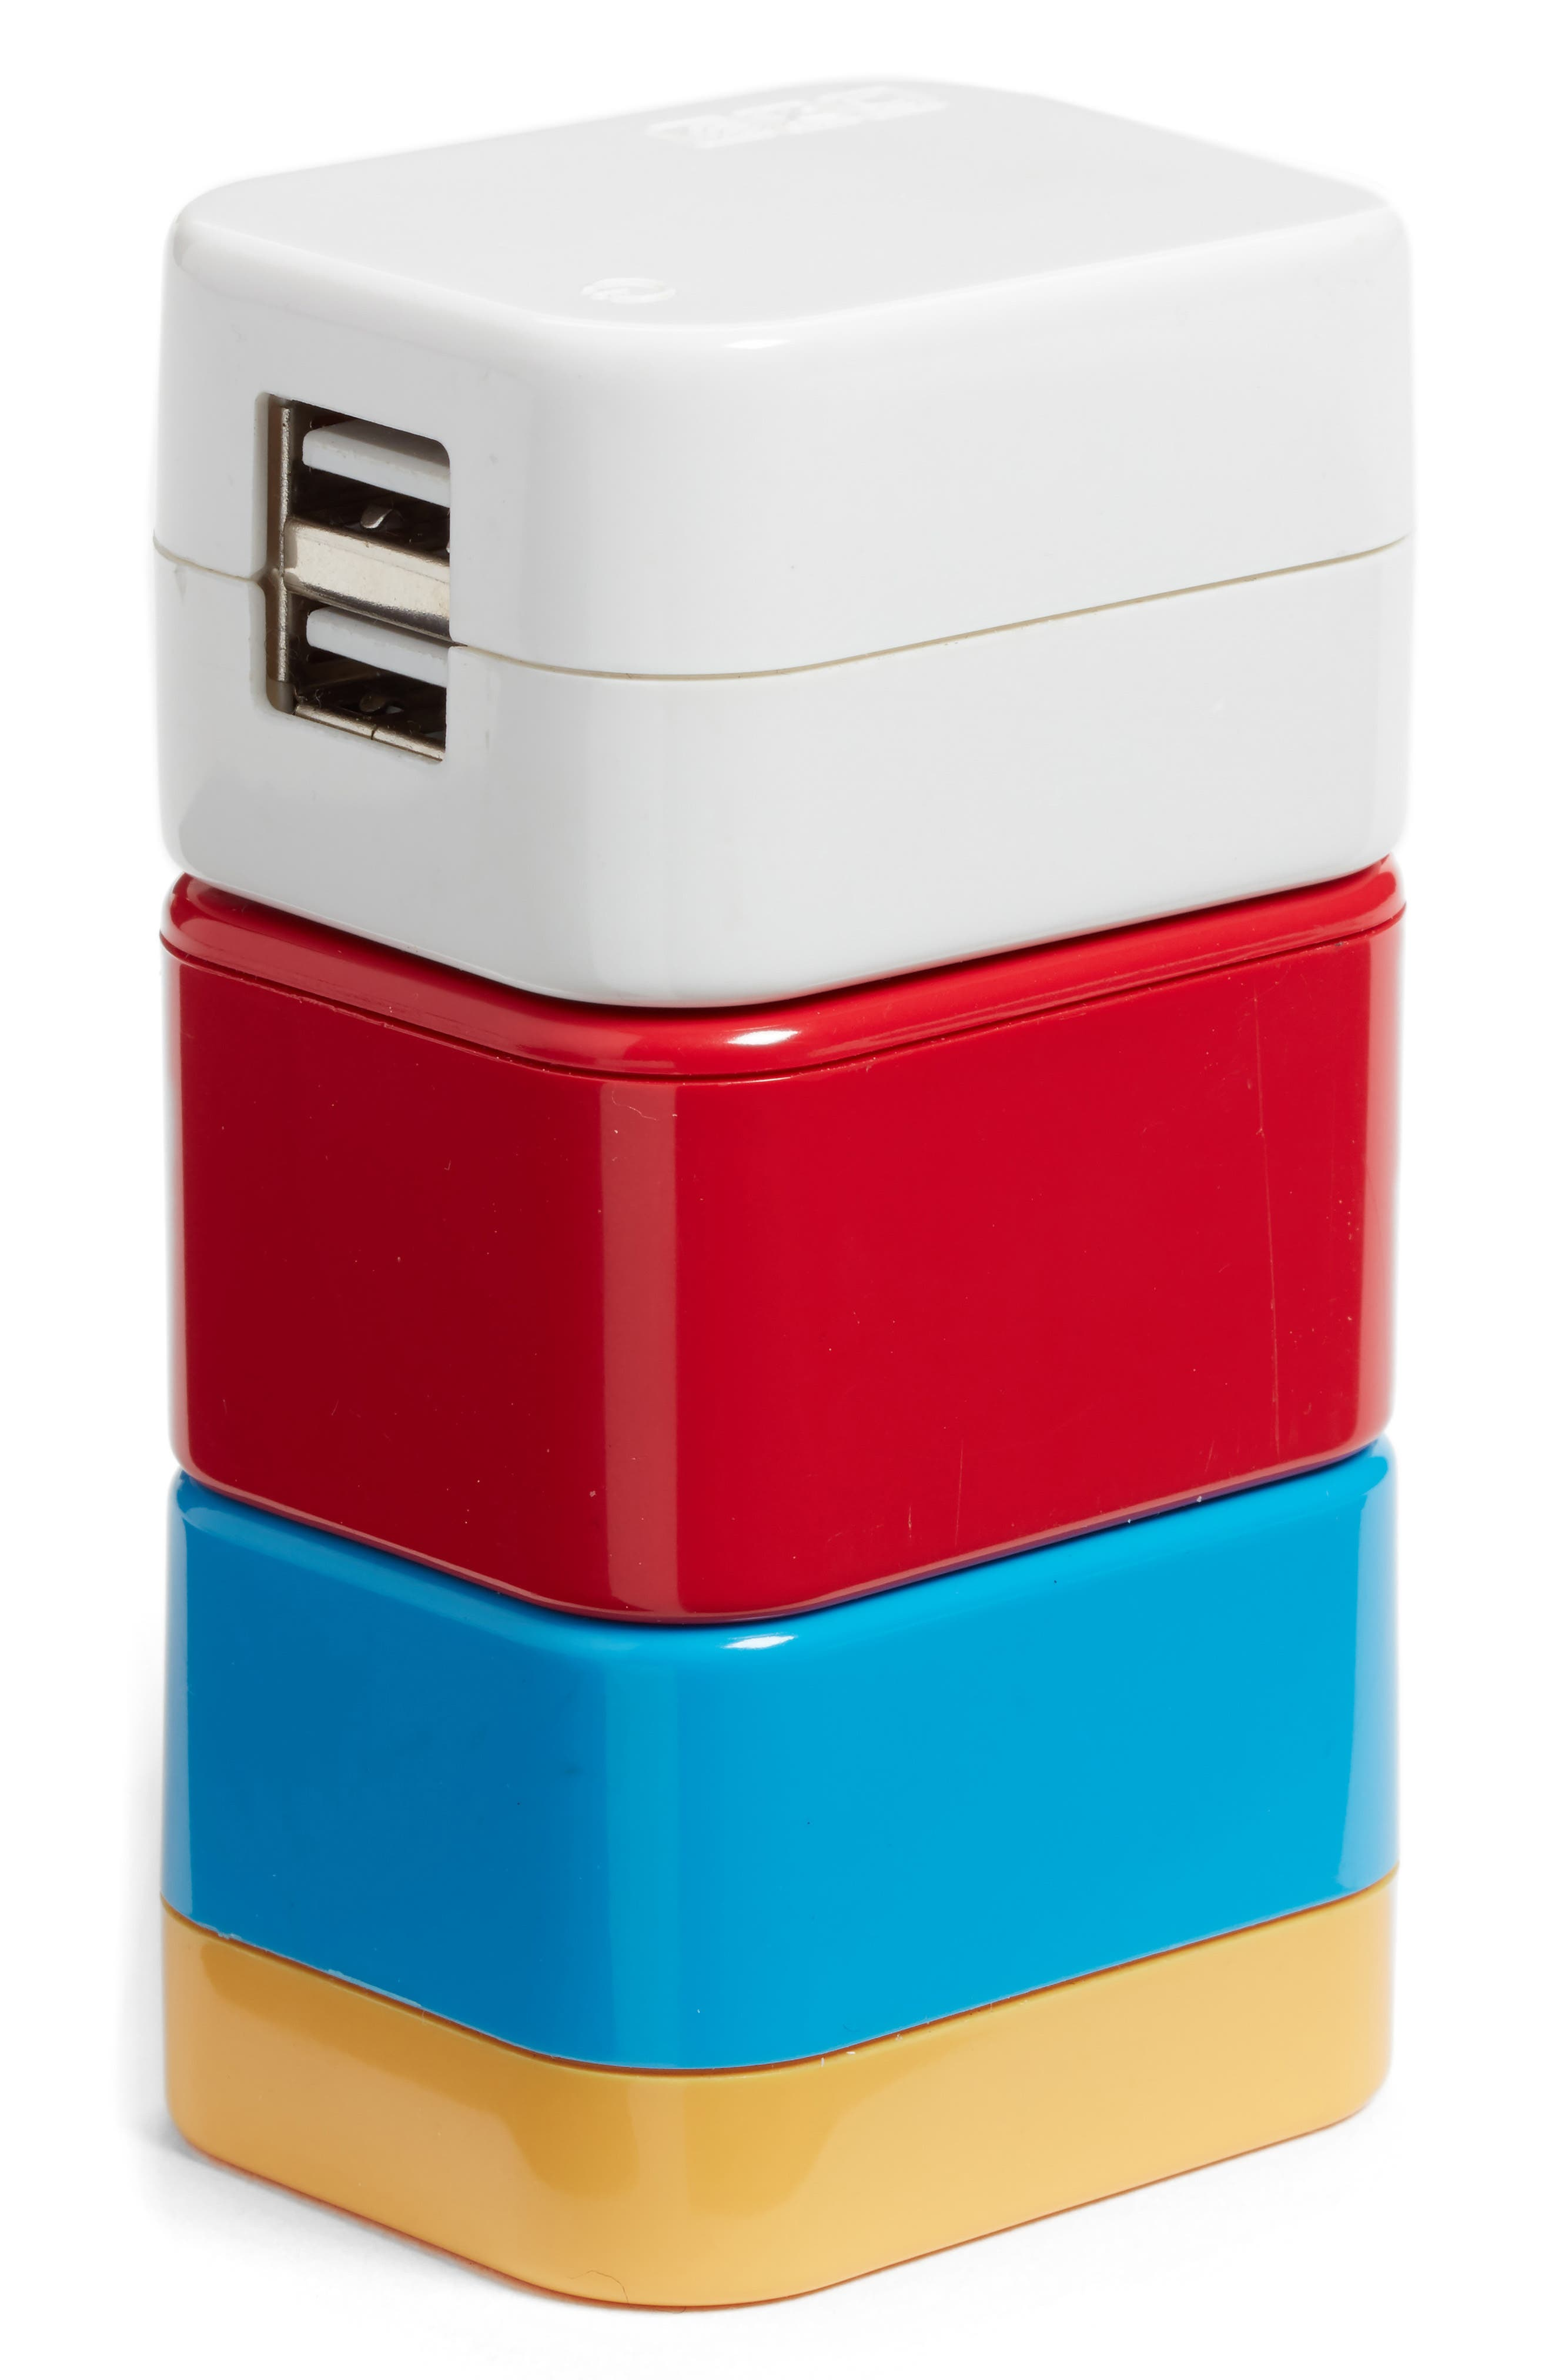 5-in-1 Universal Travel Adapter, Main, color, 600